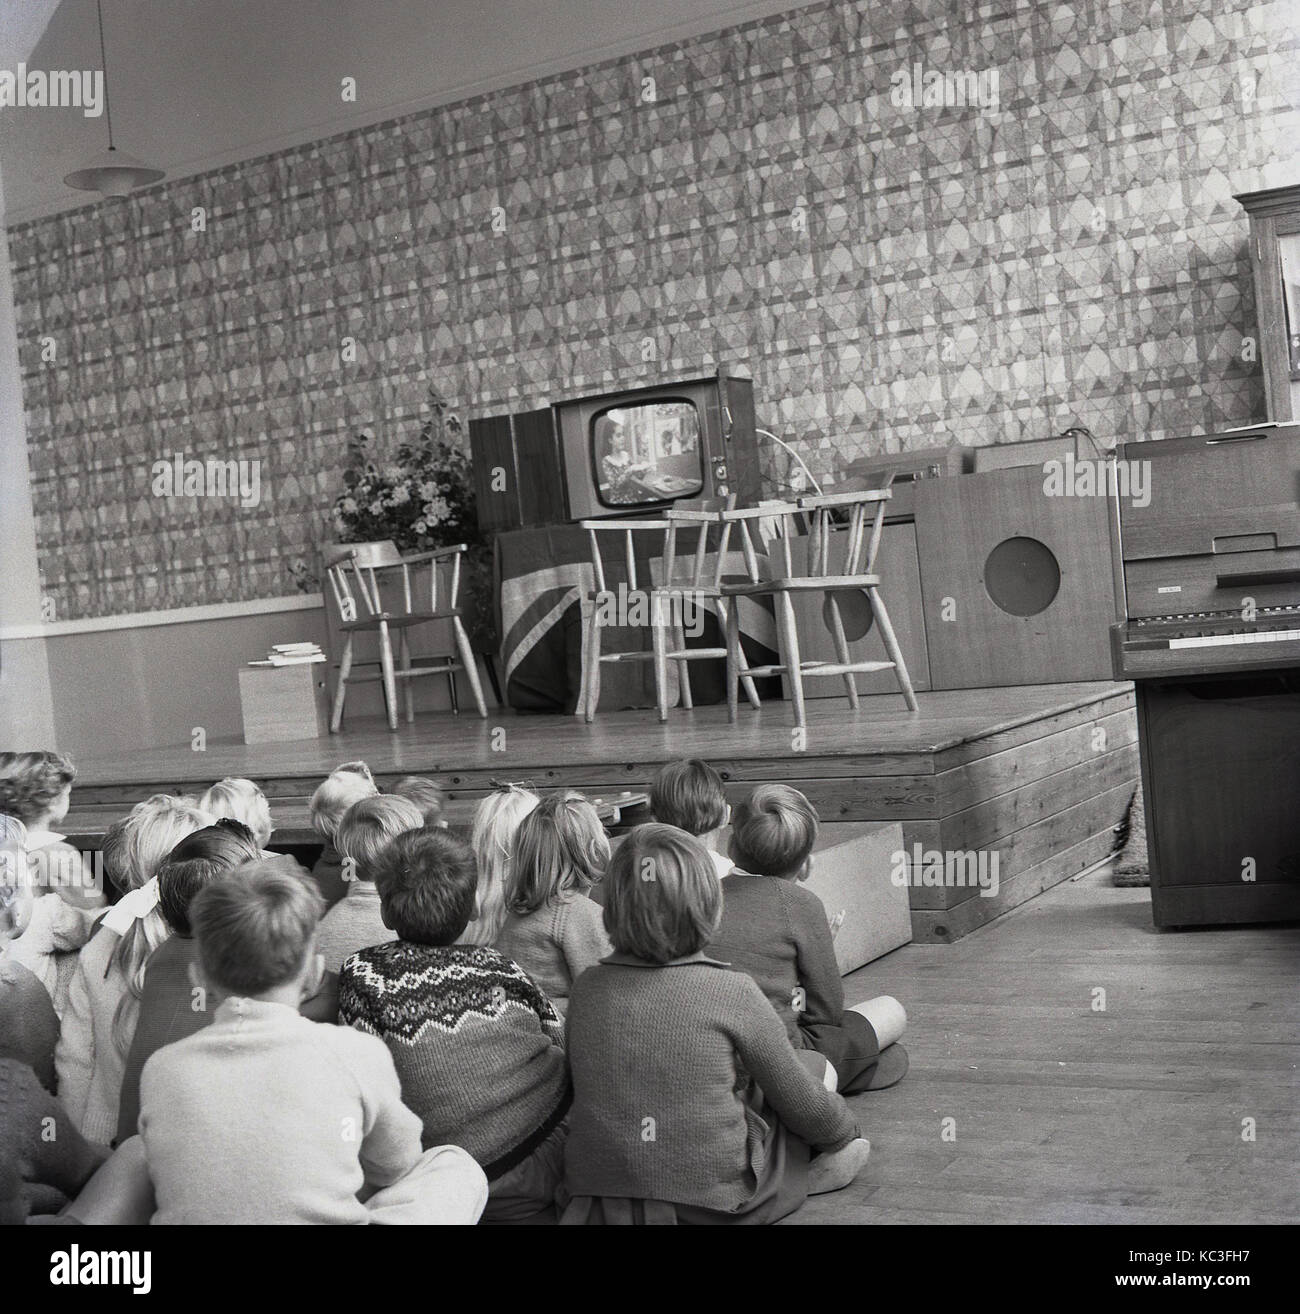 1964, historical, group of primary school children sit together watching a childrens programme on a new television - Stock Image